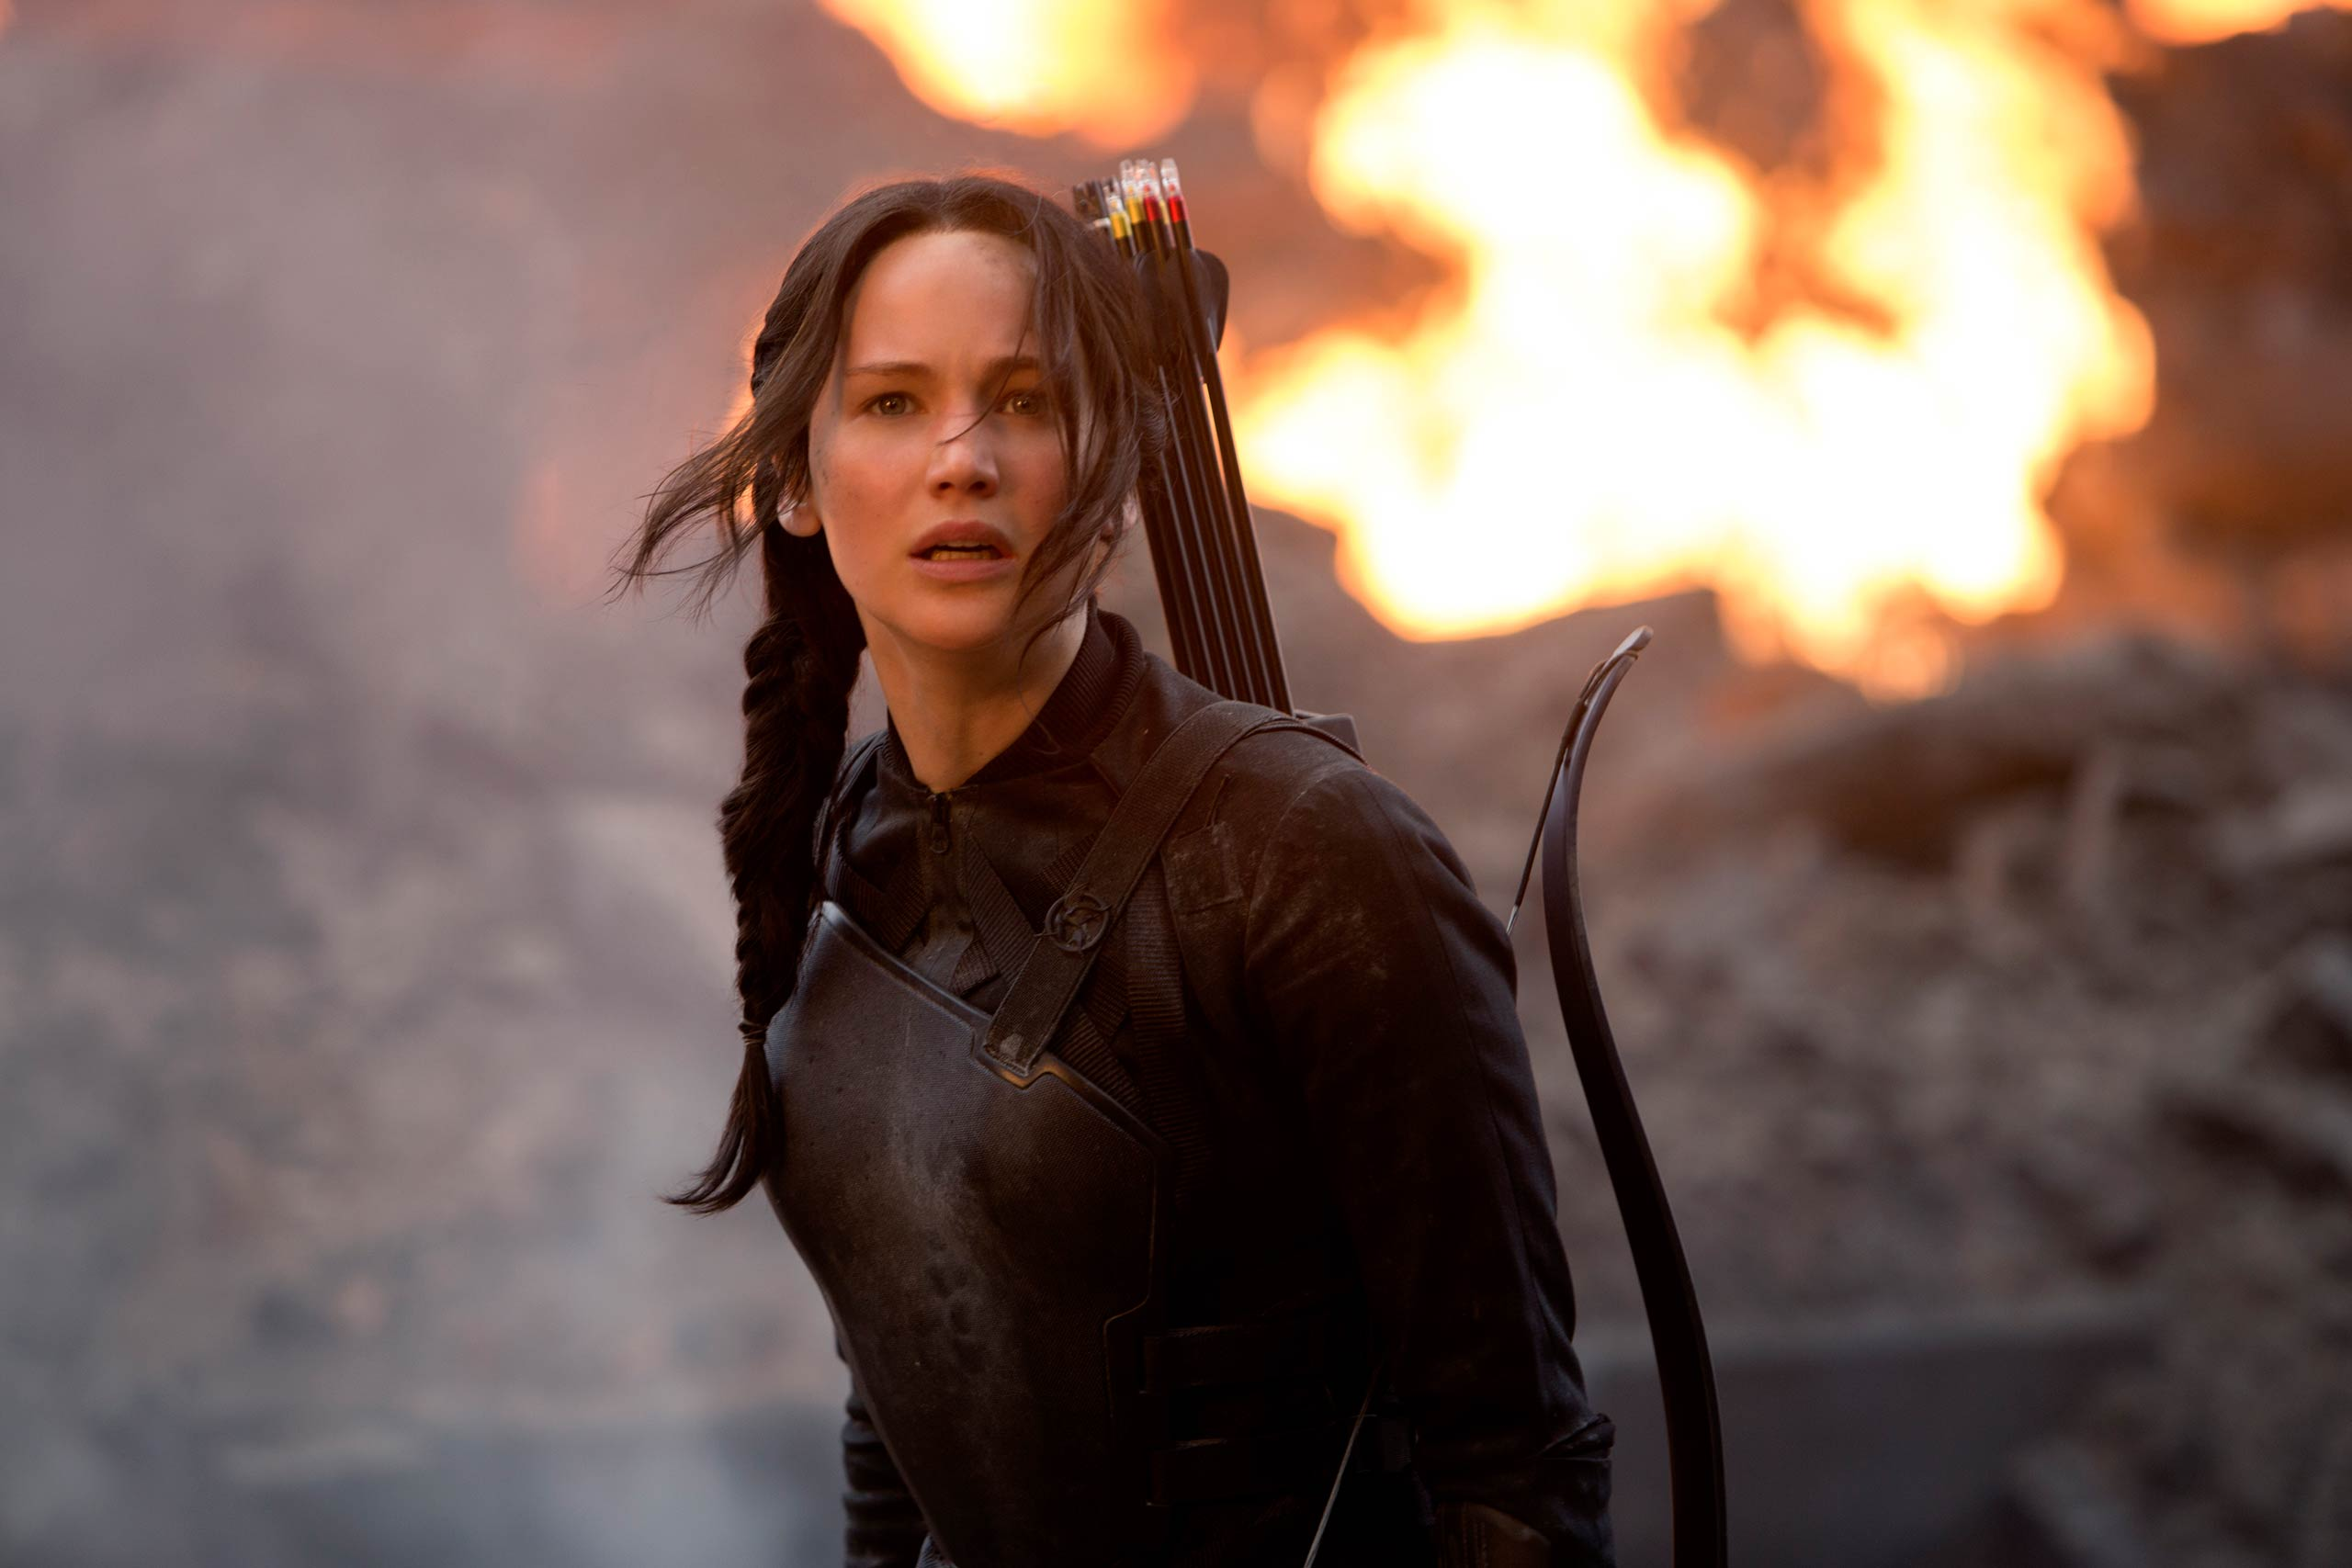 2. The Hunger Games: Mockingjay - Part 1 - $308,939,828